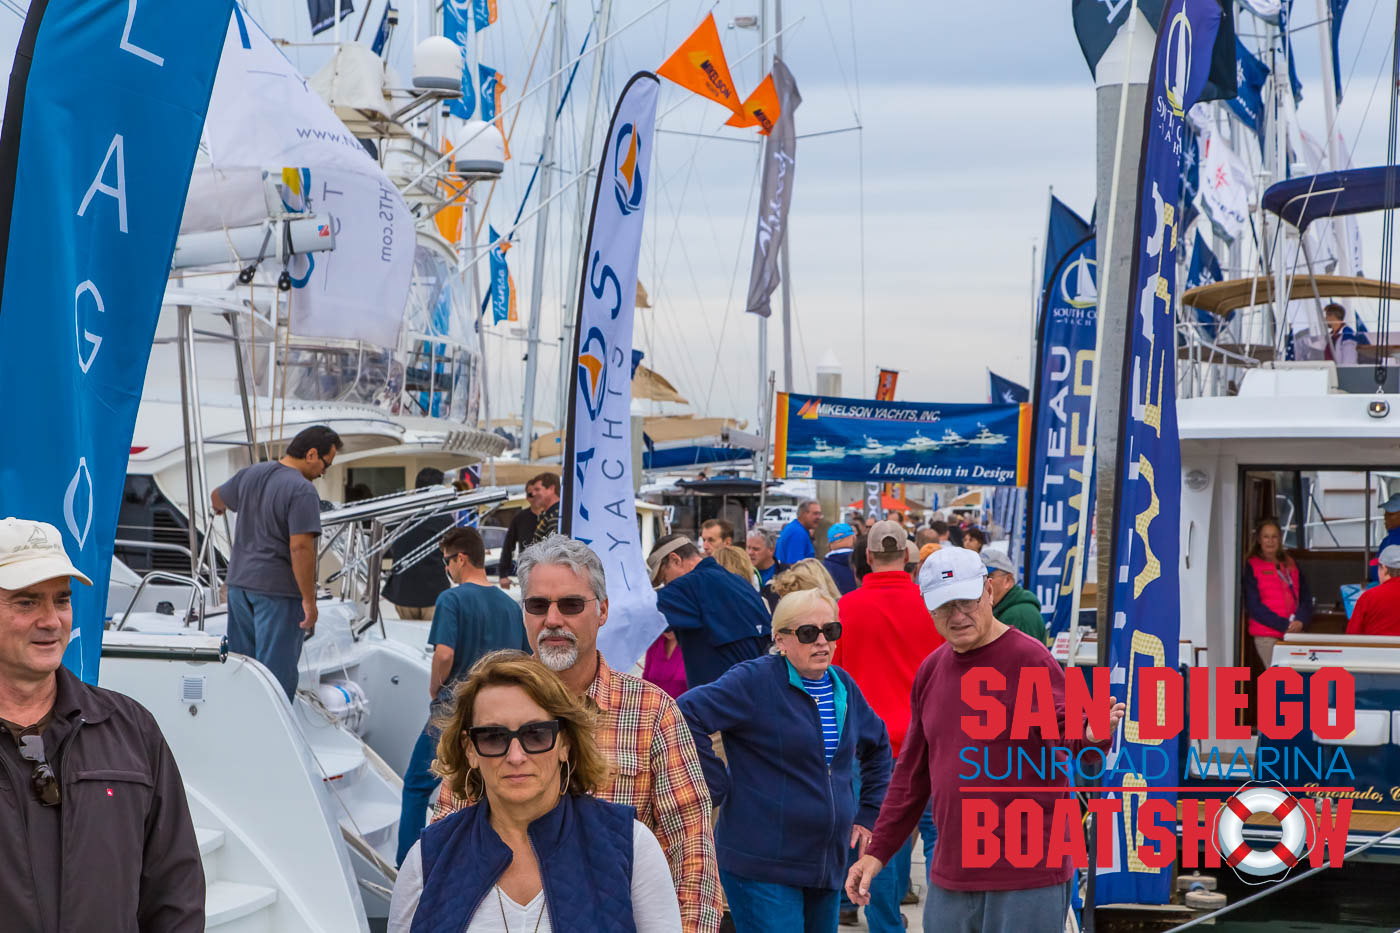 MED_SunroadBoatShow2016-12 copy